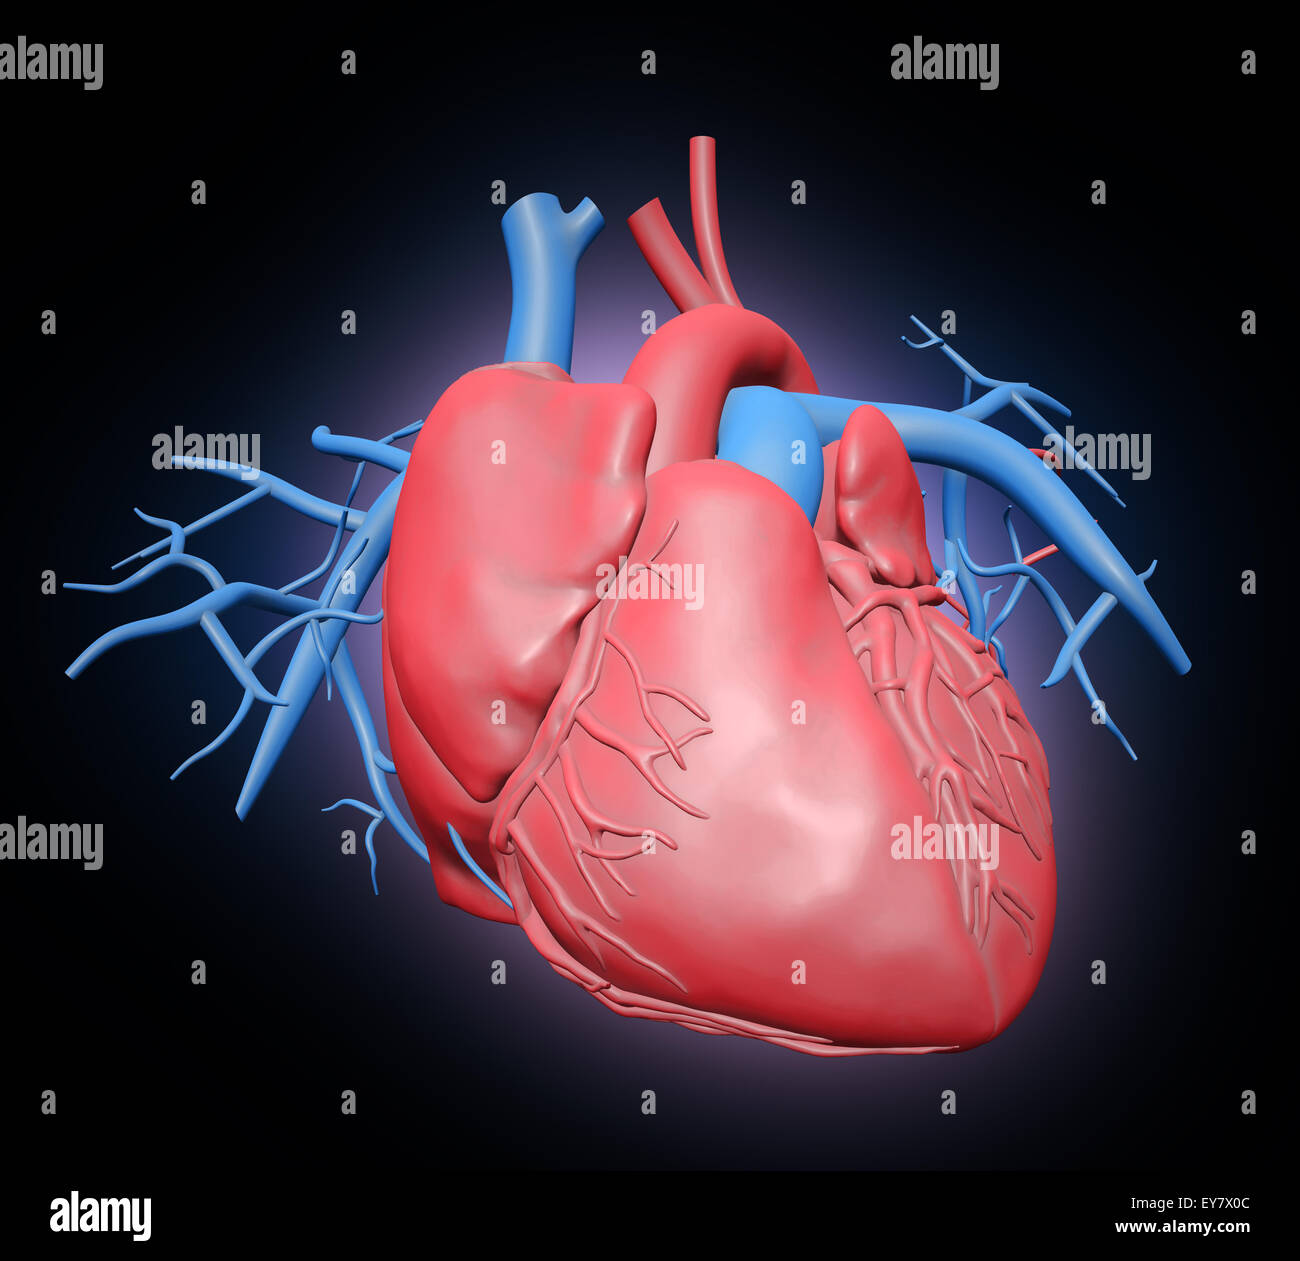 Human heart illustration - cardiovascular system - Stock Image